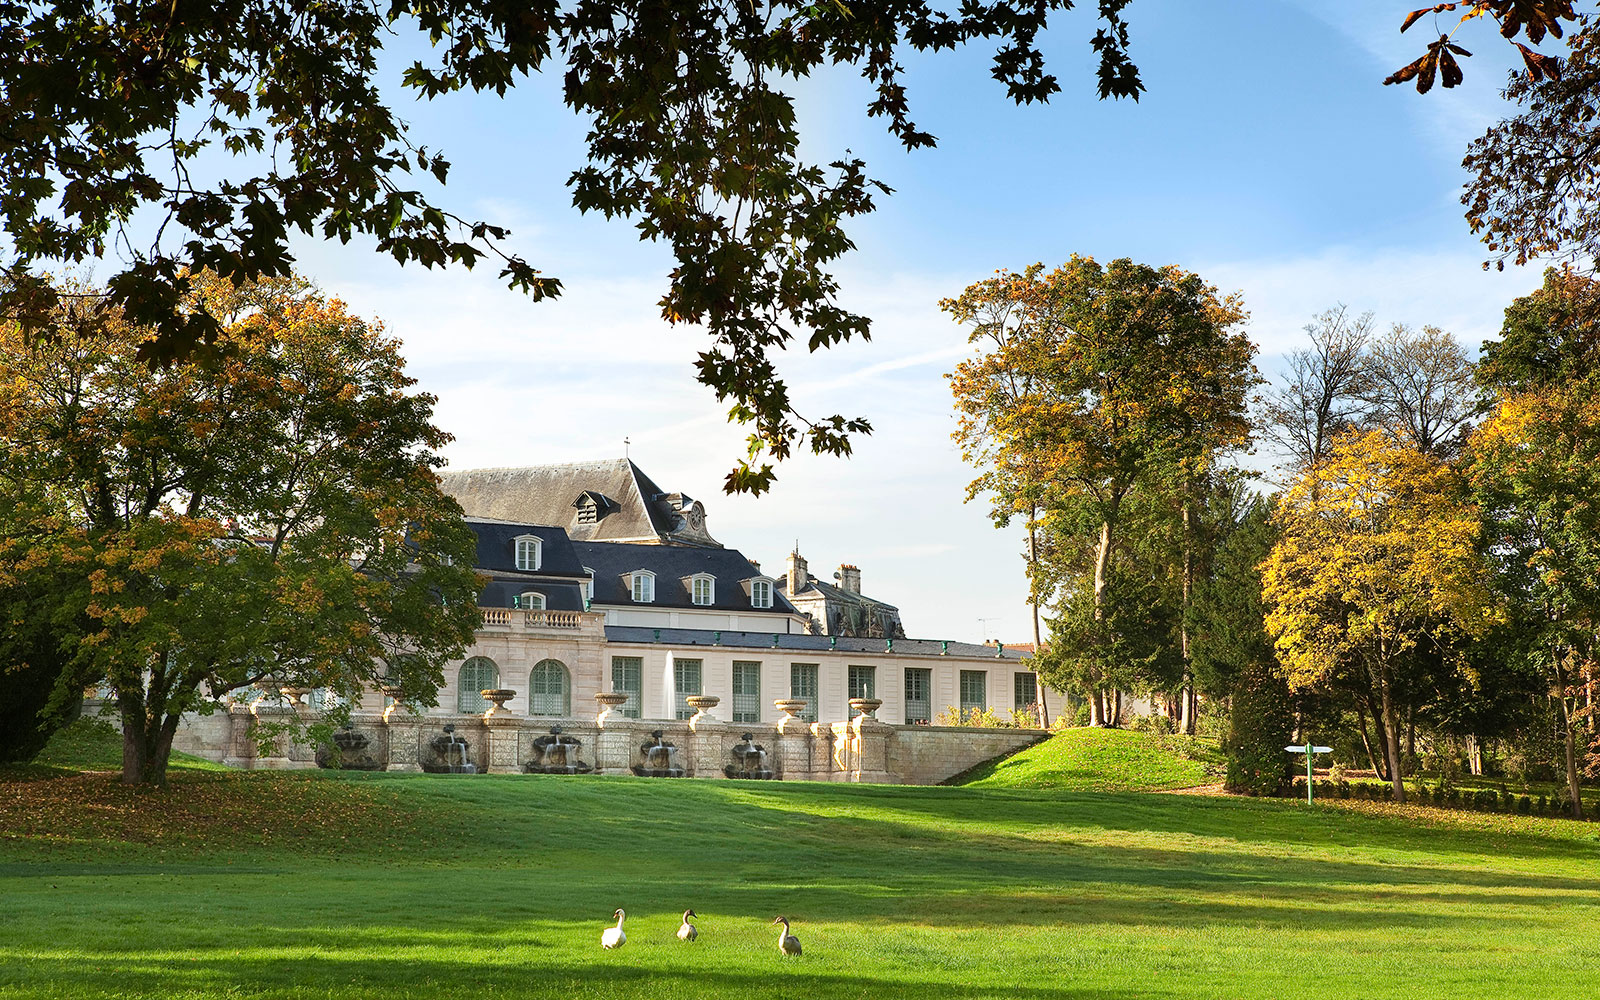 Nine New French Countryside Retreats to Live Out Your Provençal Dream Life: Hotel Auberge de Jeu de Paume, Chantilly